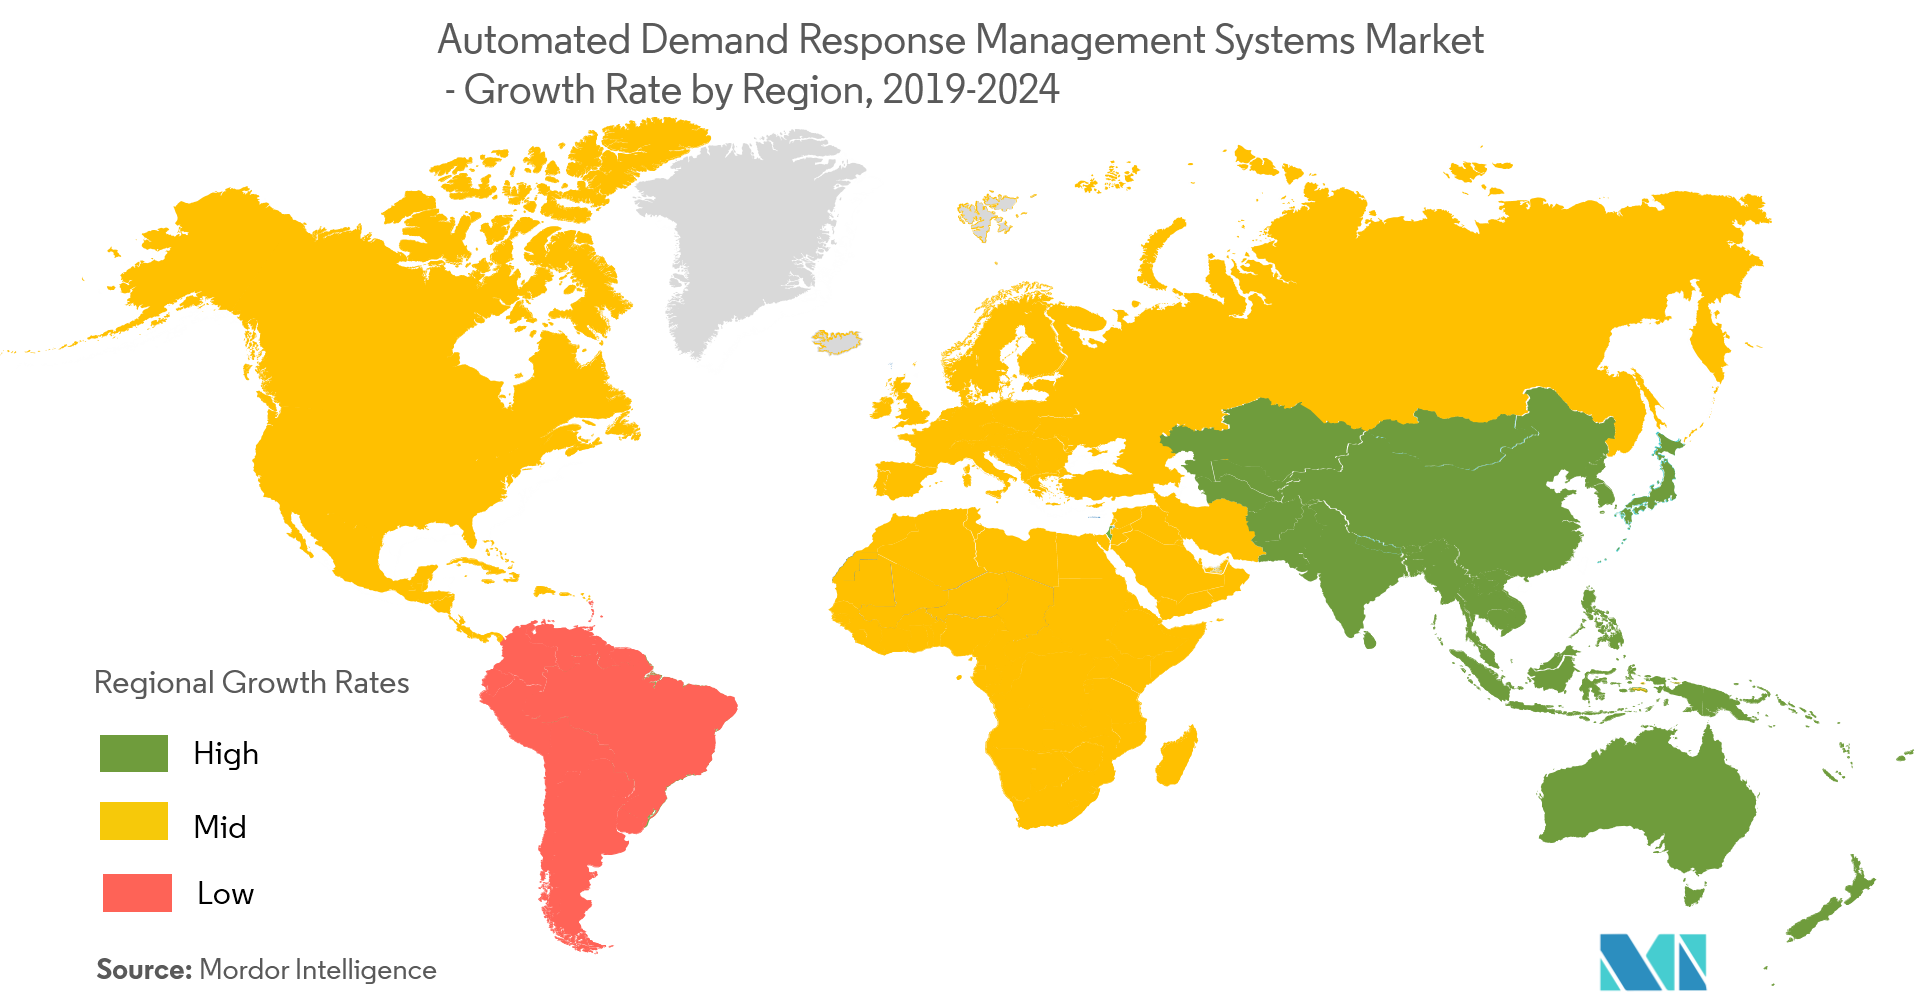 Automated Demand Response Management Systems Market Growth Rate